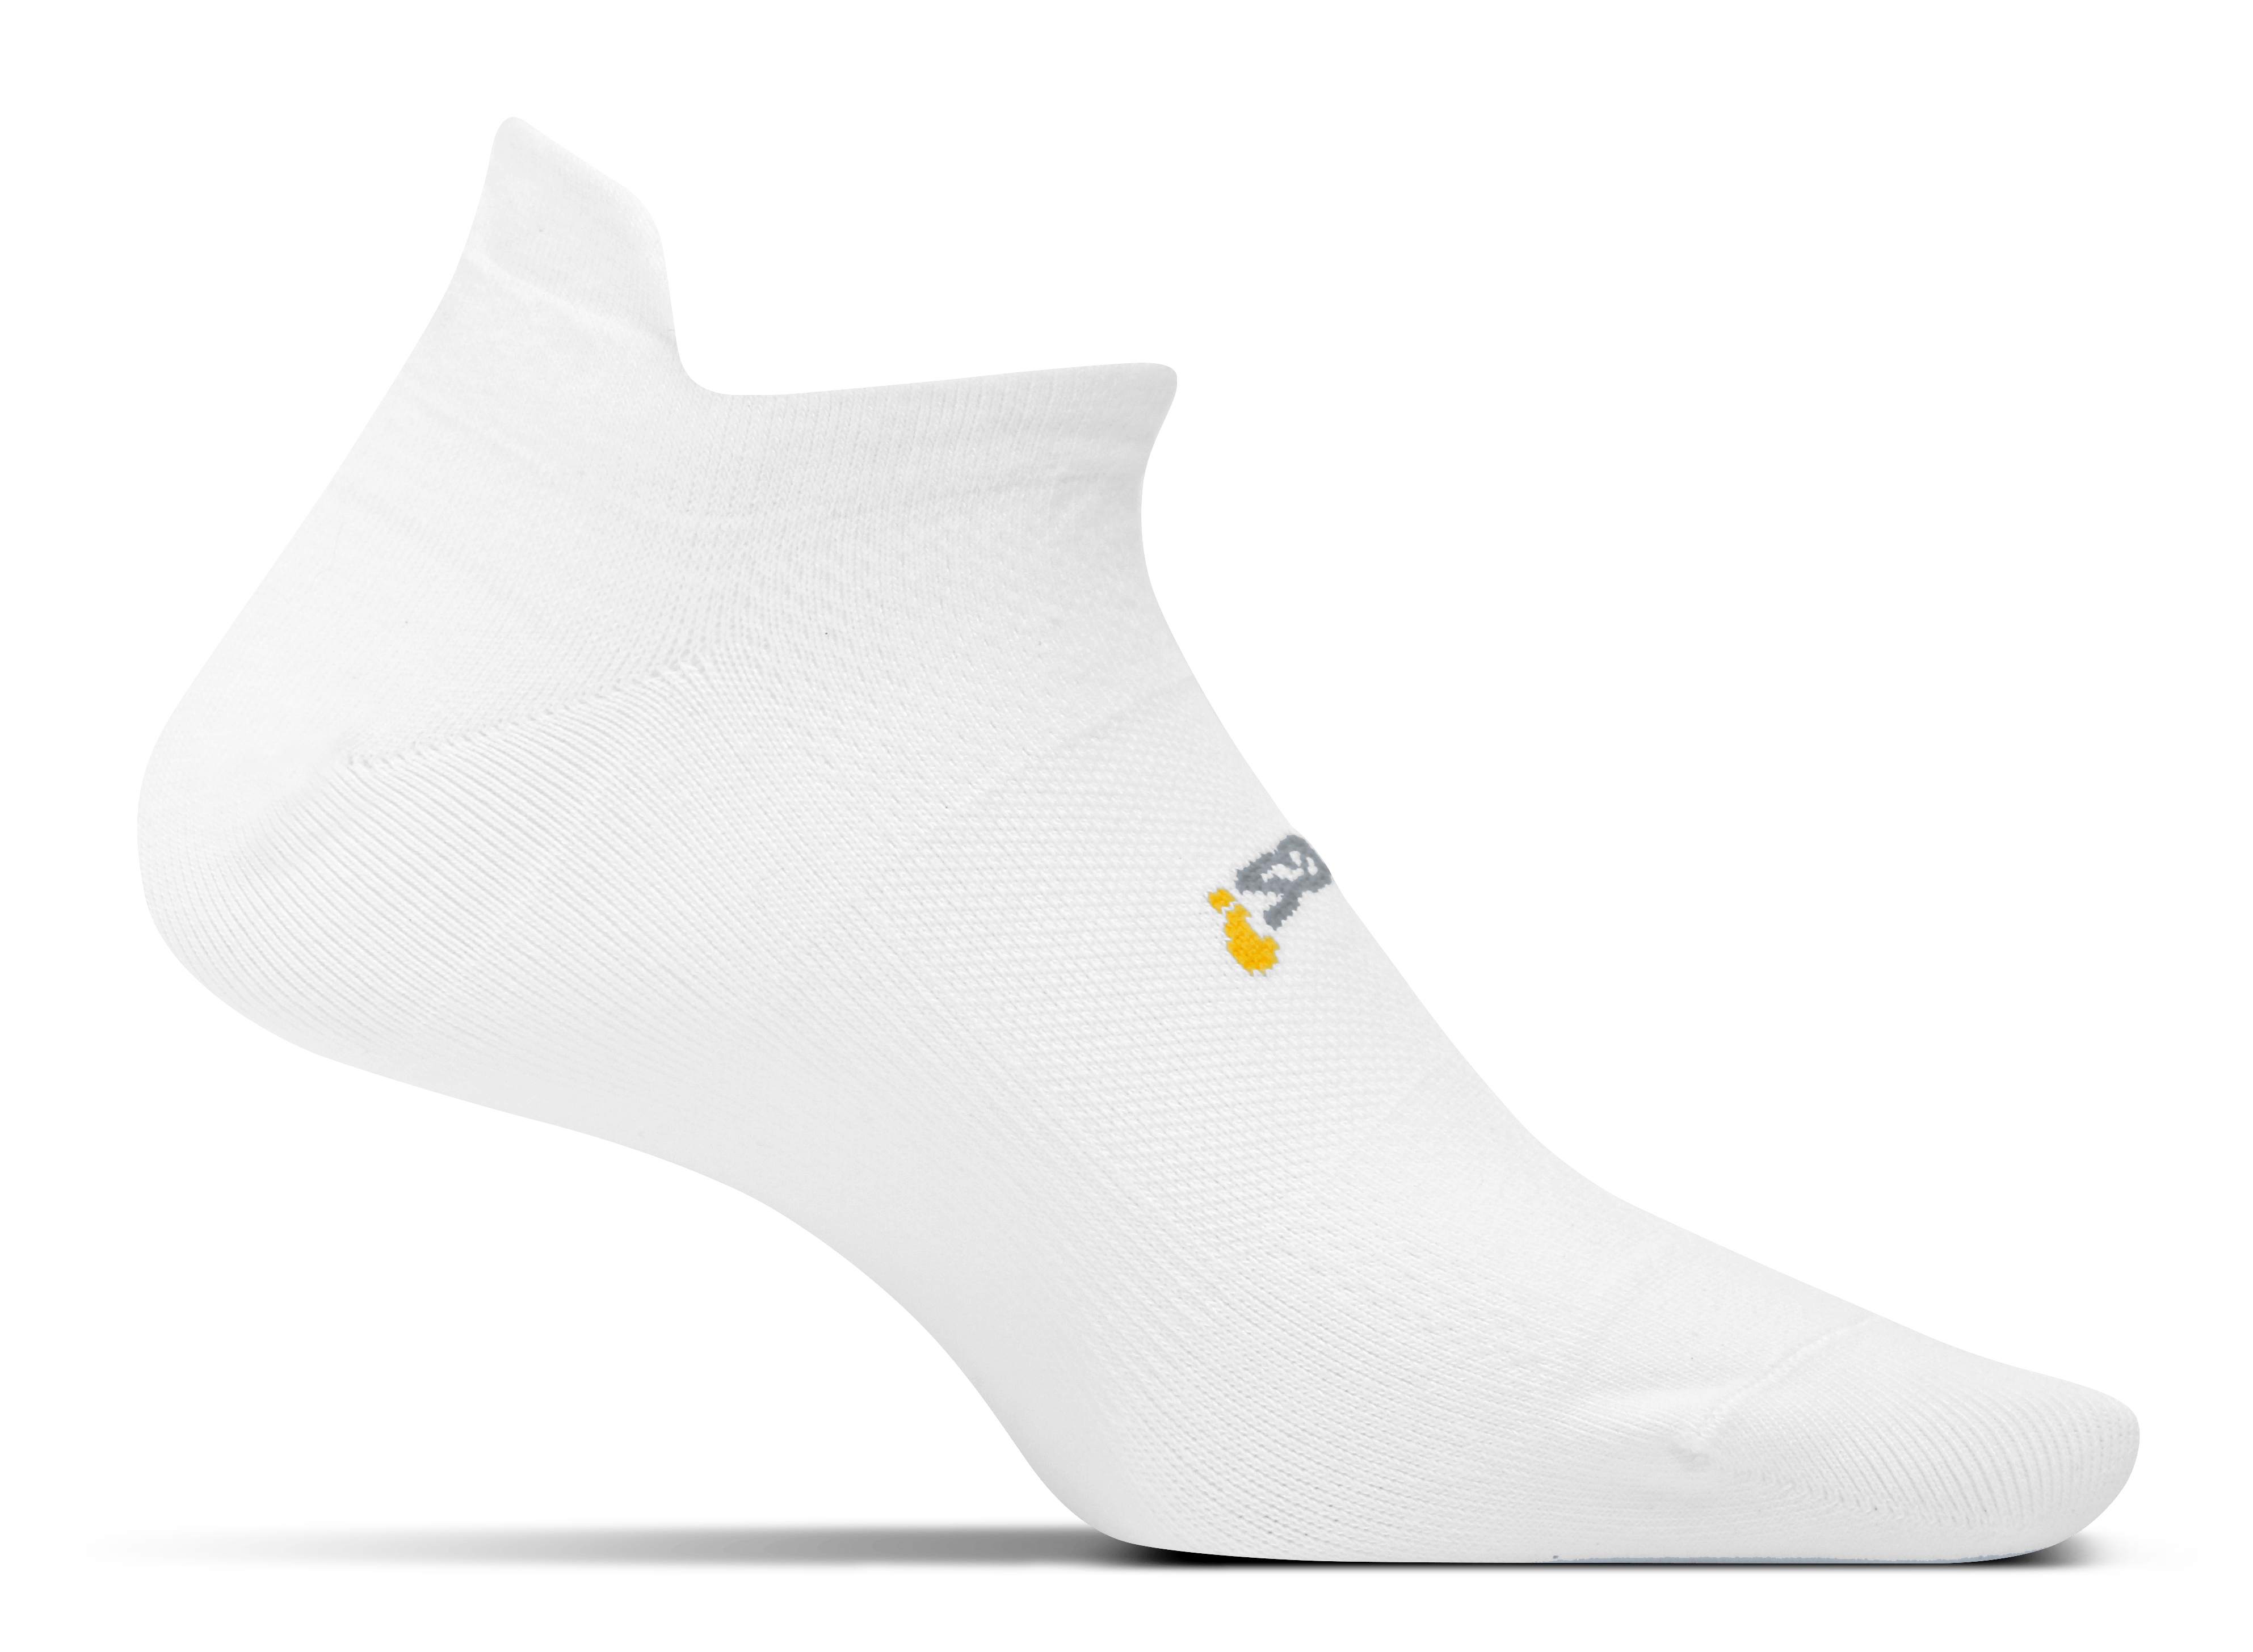 White Socks Png Image PNG Image